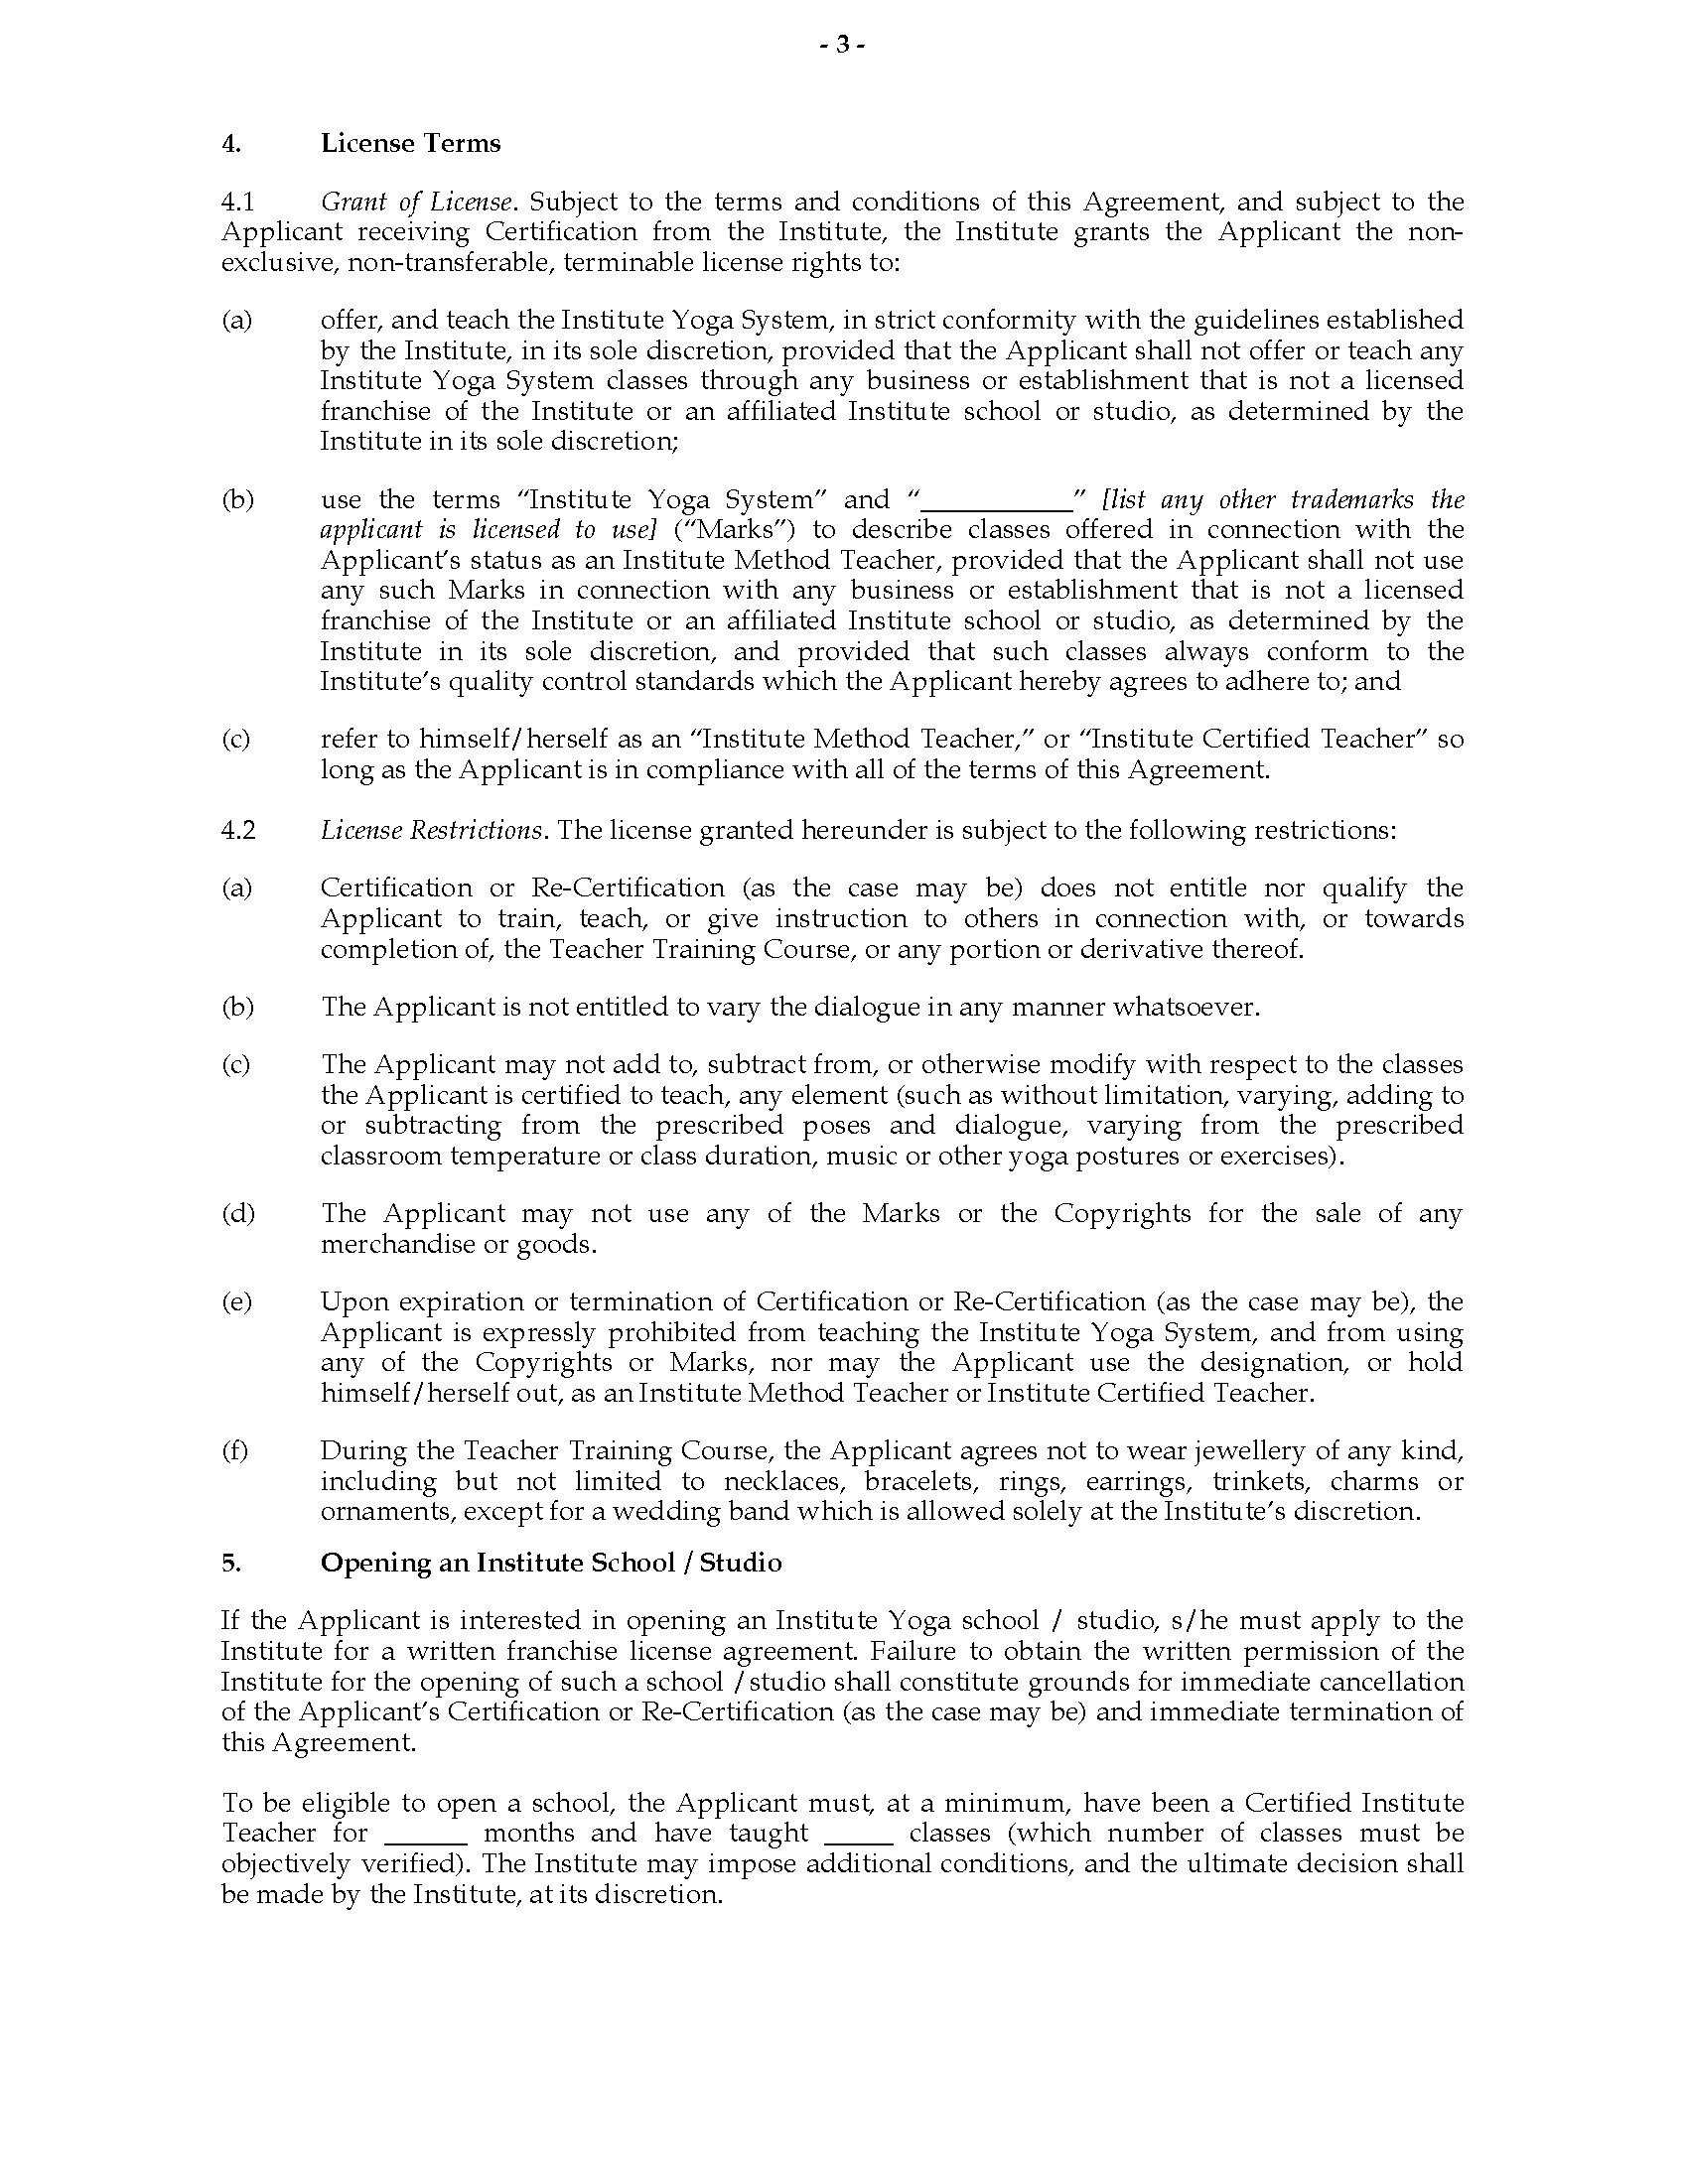 India Yoga Instructor Training Agreement Legal Forms And Business